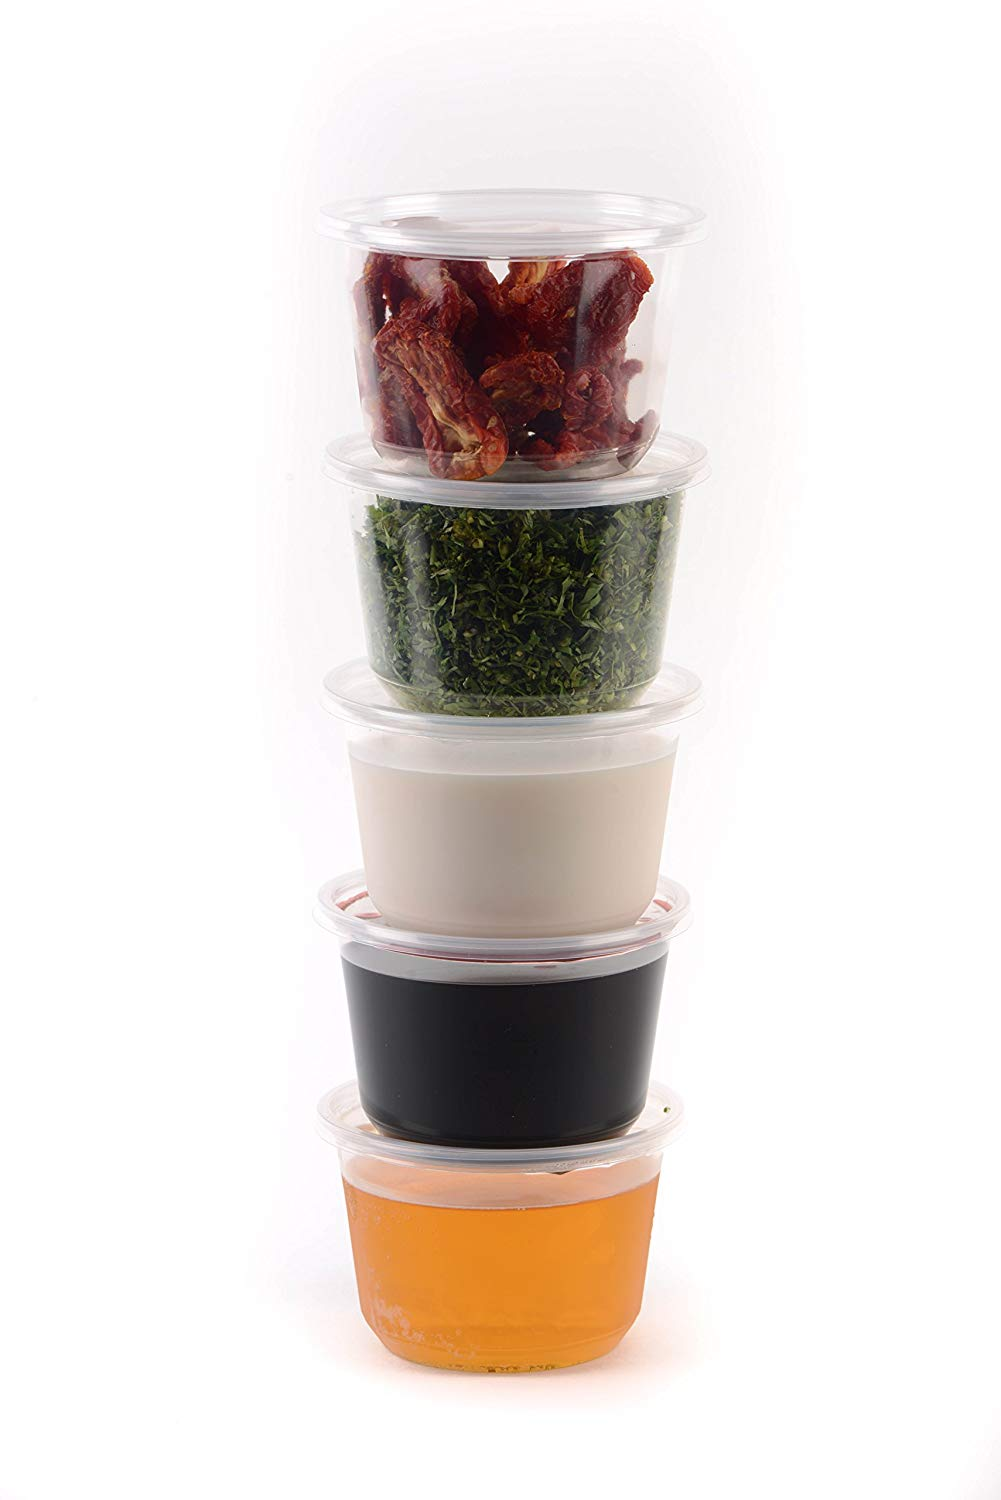 Plastic Deli Food Storage Containers with Lids